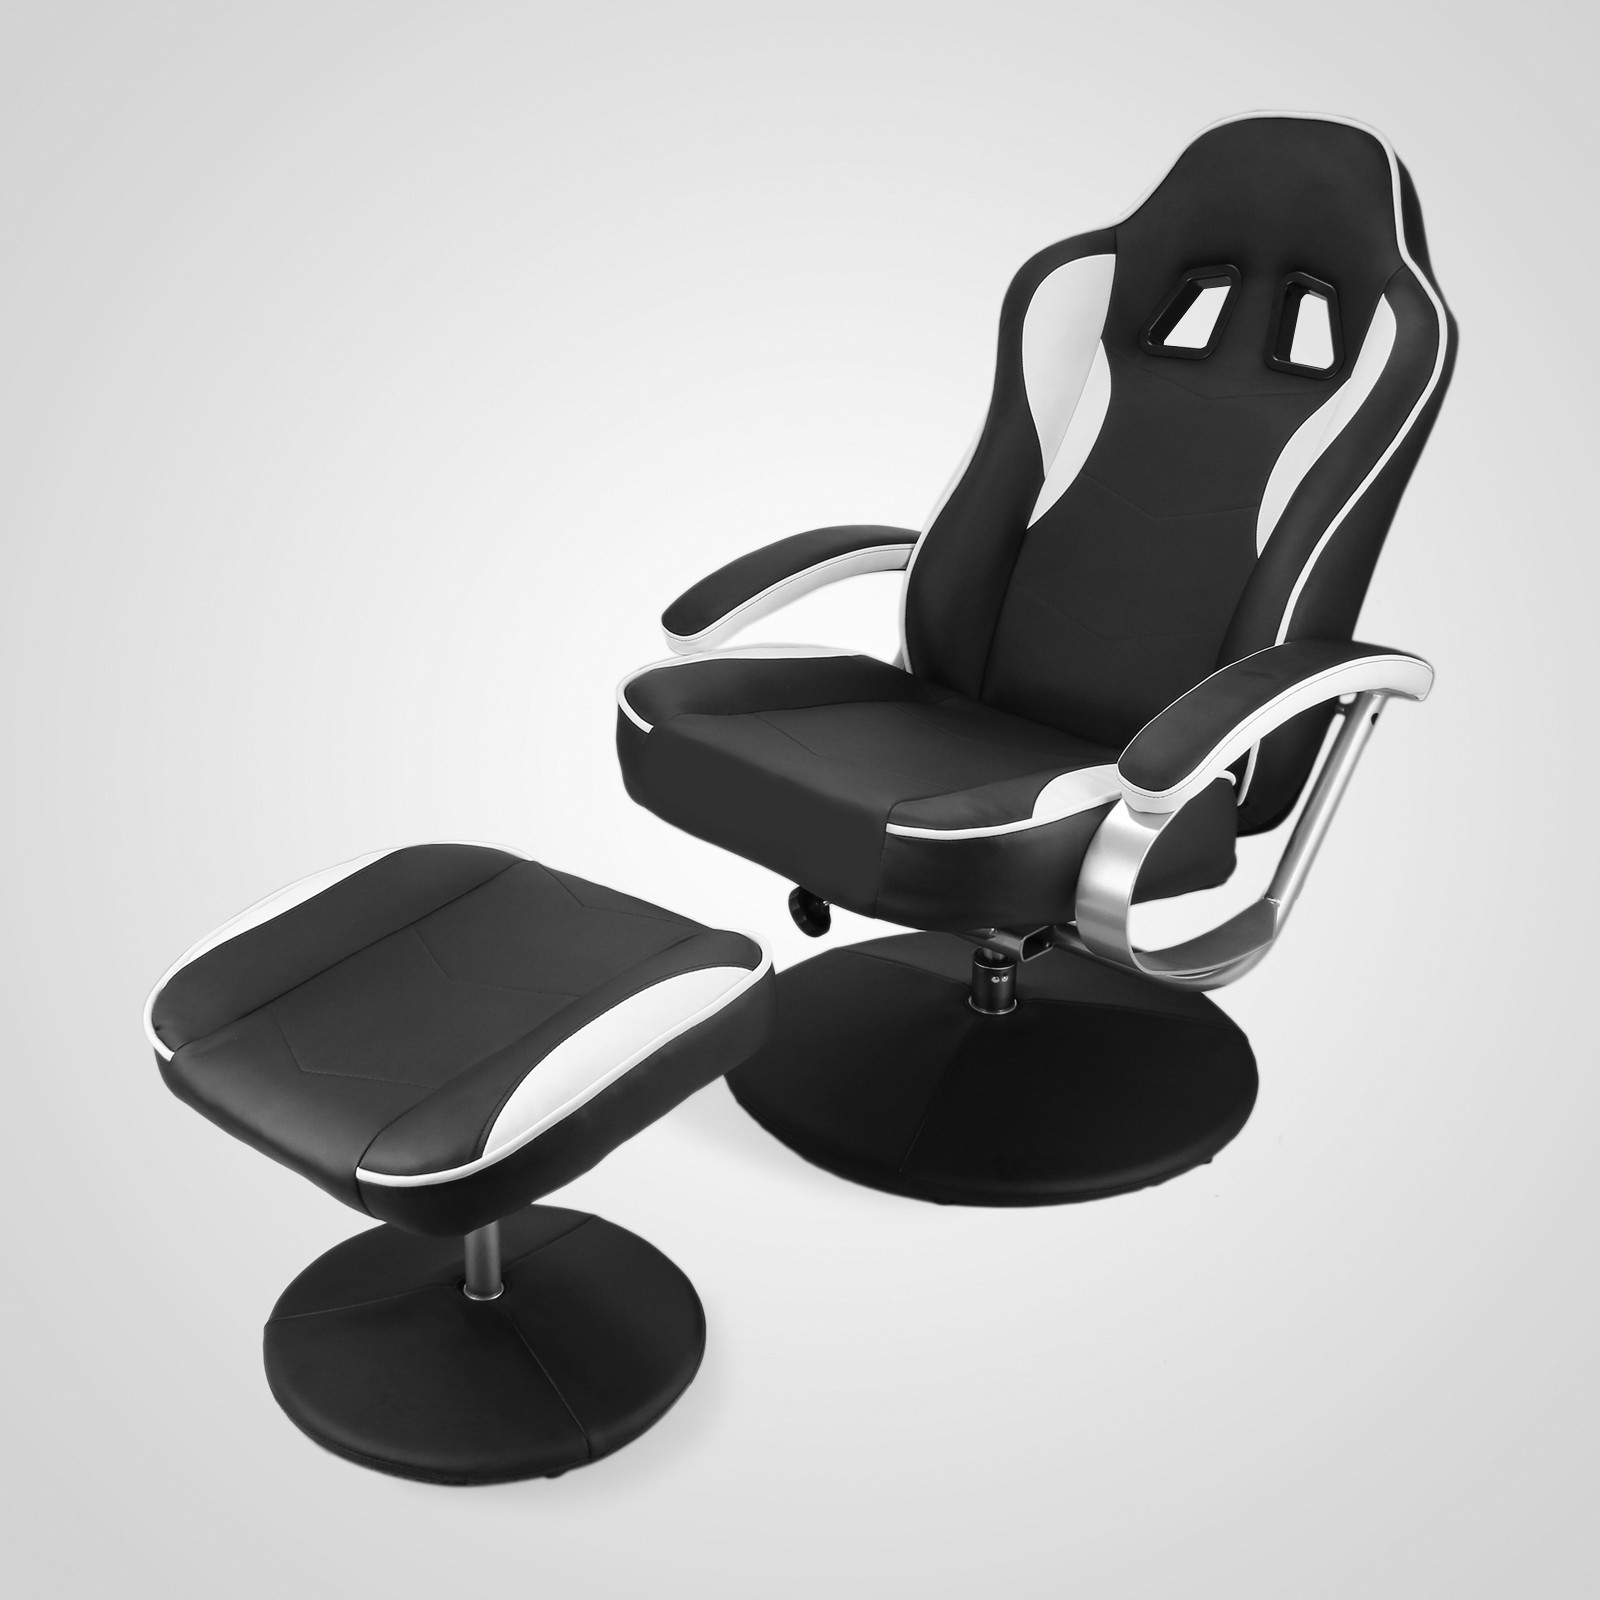 Racing Tv Sessel Racing Tv Sessel Relax Racer Gt Mit Fußhocker Gaming